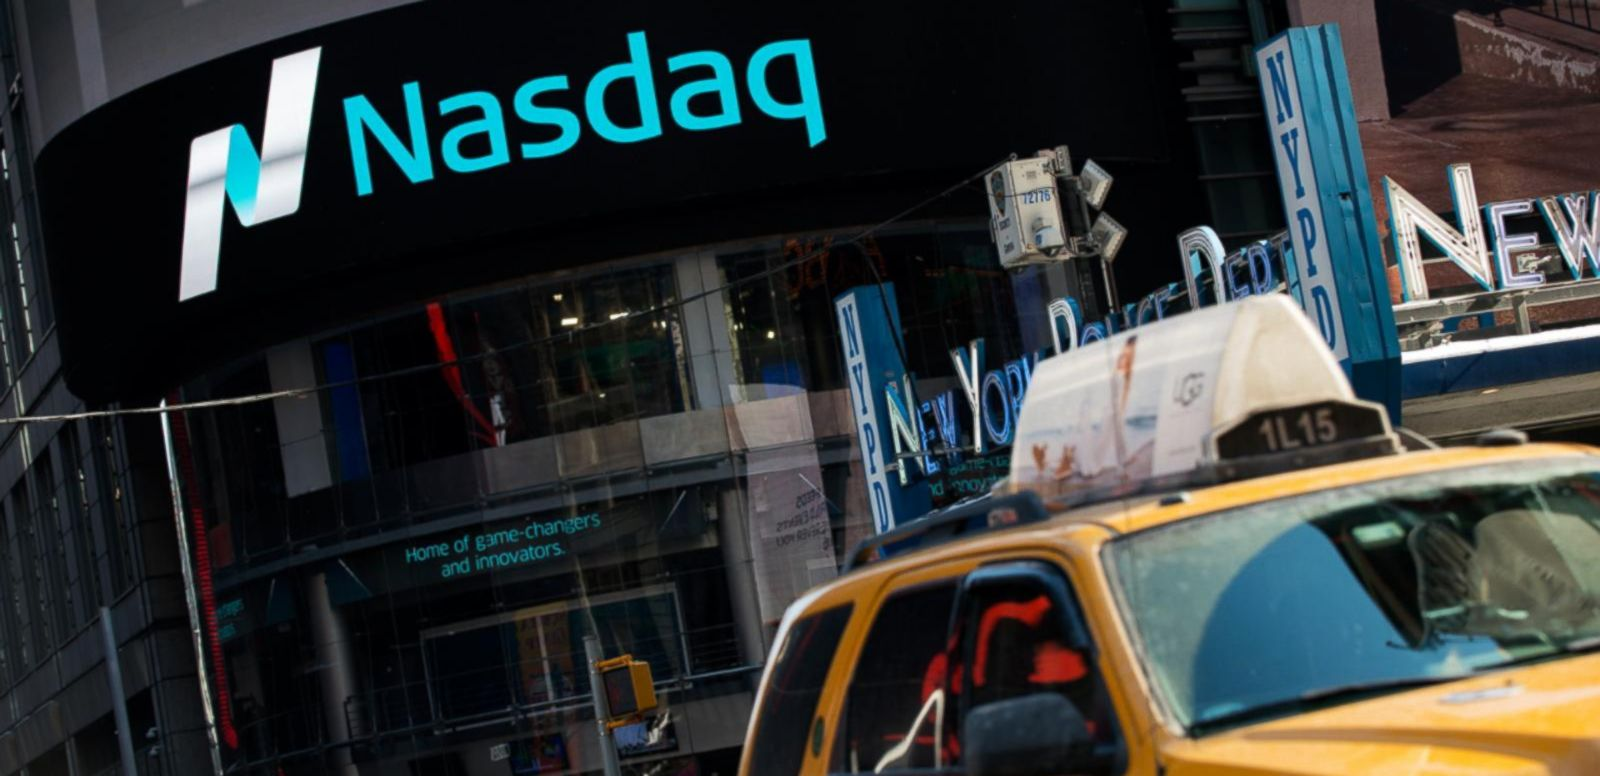 VIDEO: Big Number: Nasdaq Hits 5,000 as Investors Trade Like It's 2000